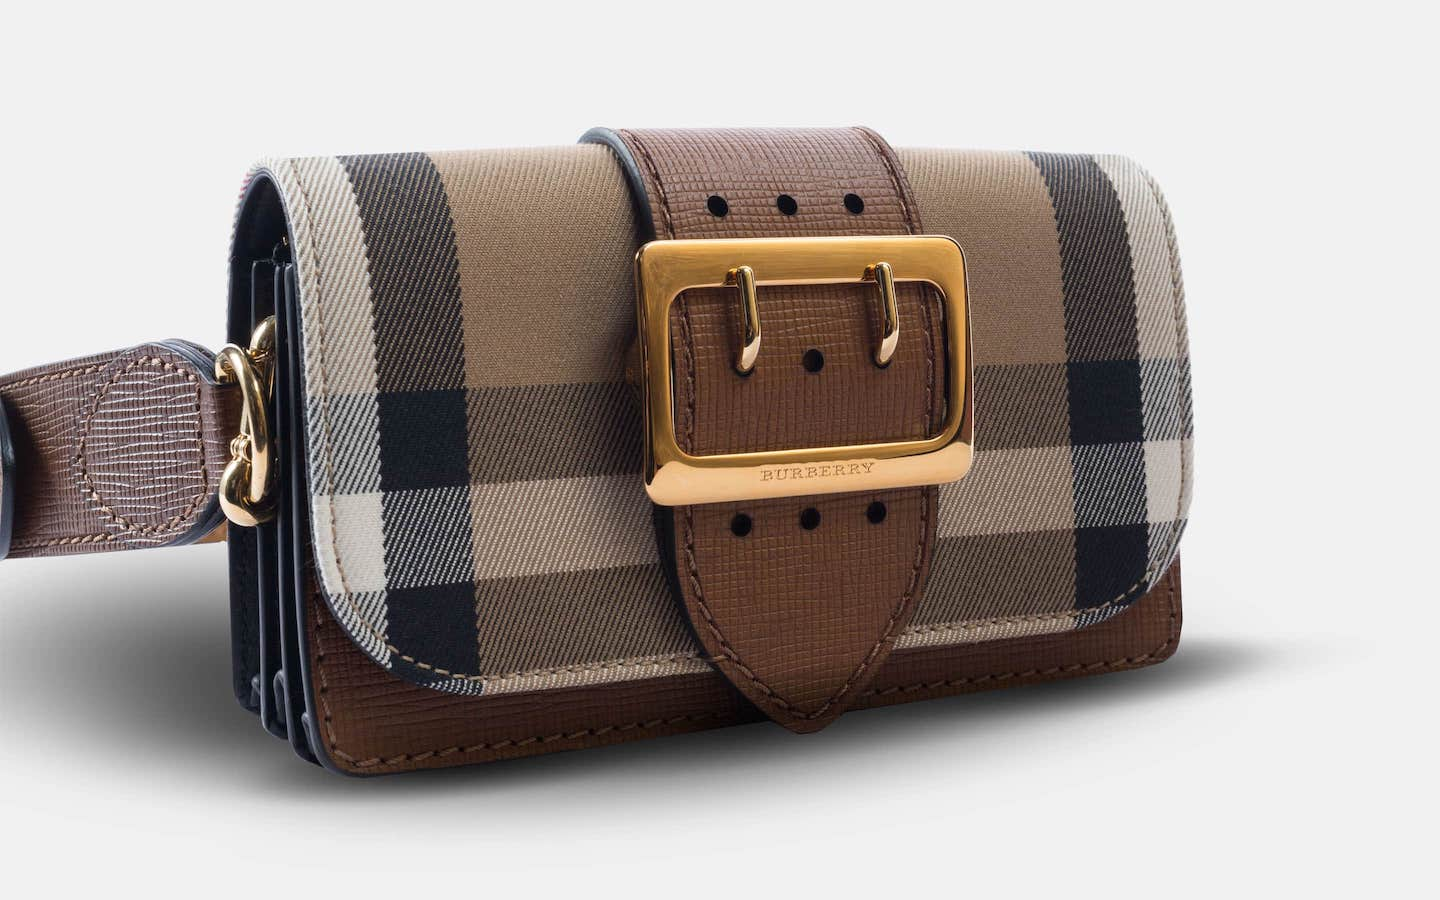 Burberry_House_Check_Buckle_Bag_Brown_Clutch_Angle_Close-min